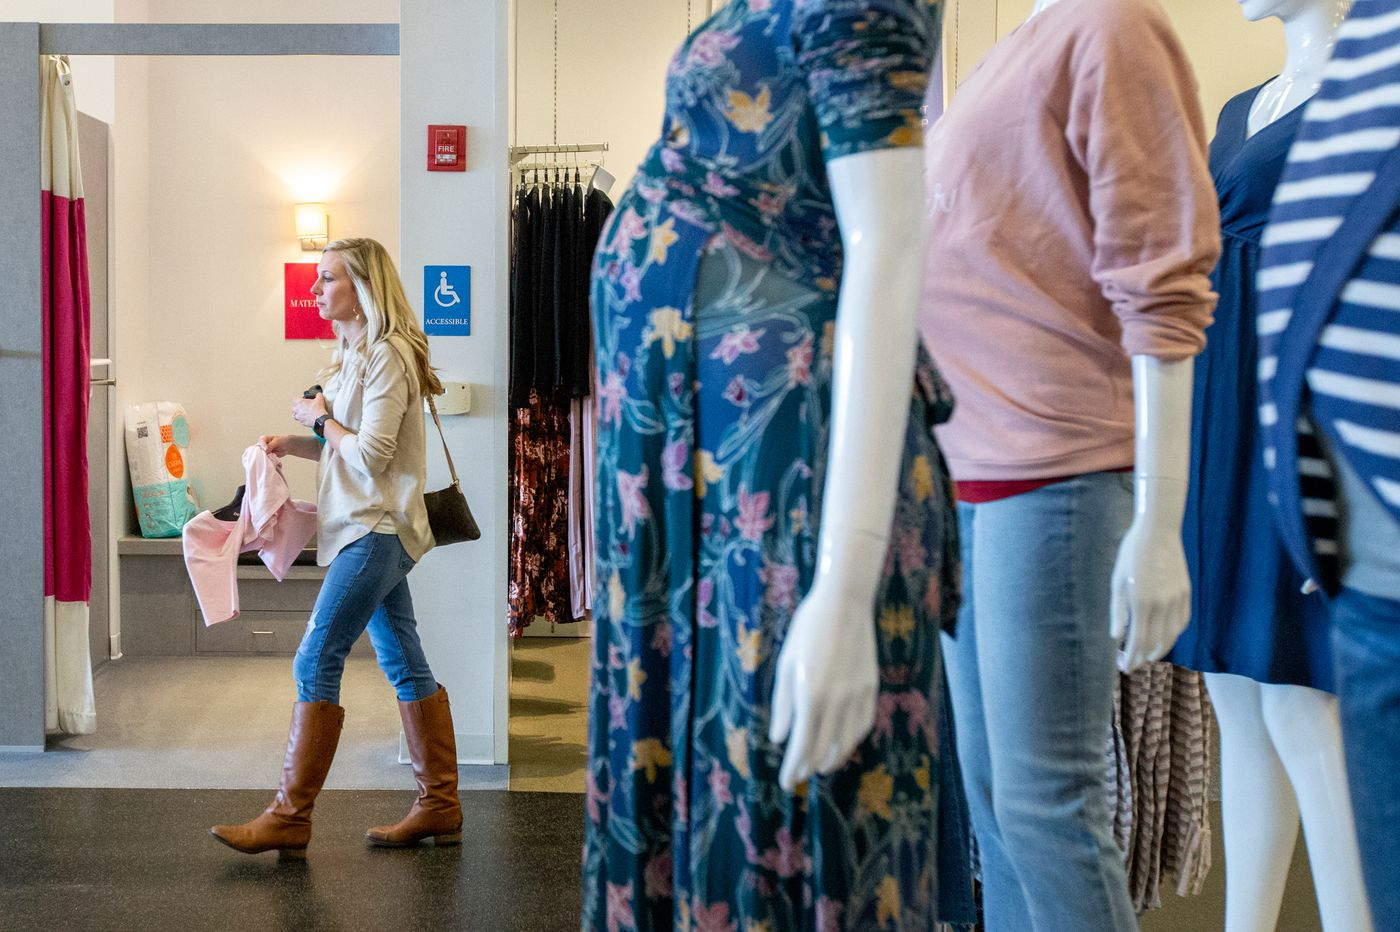 Destination Maternity's new CEO steps down as sales disappoint; stock down 35 percent